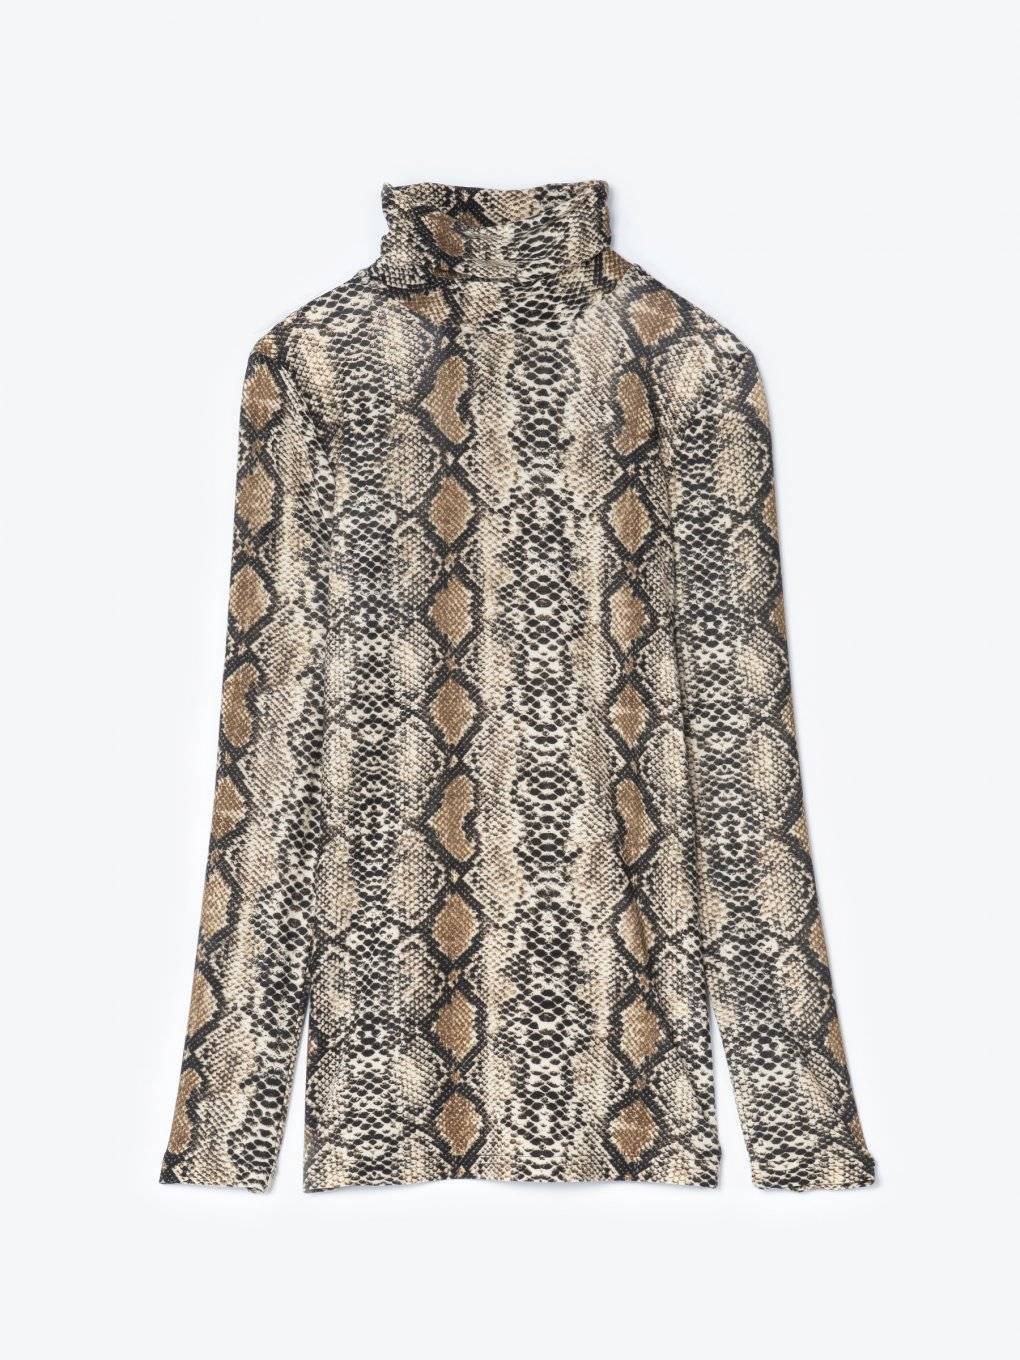 Snake print turtleneck t-shirt